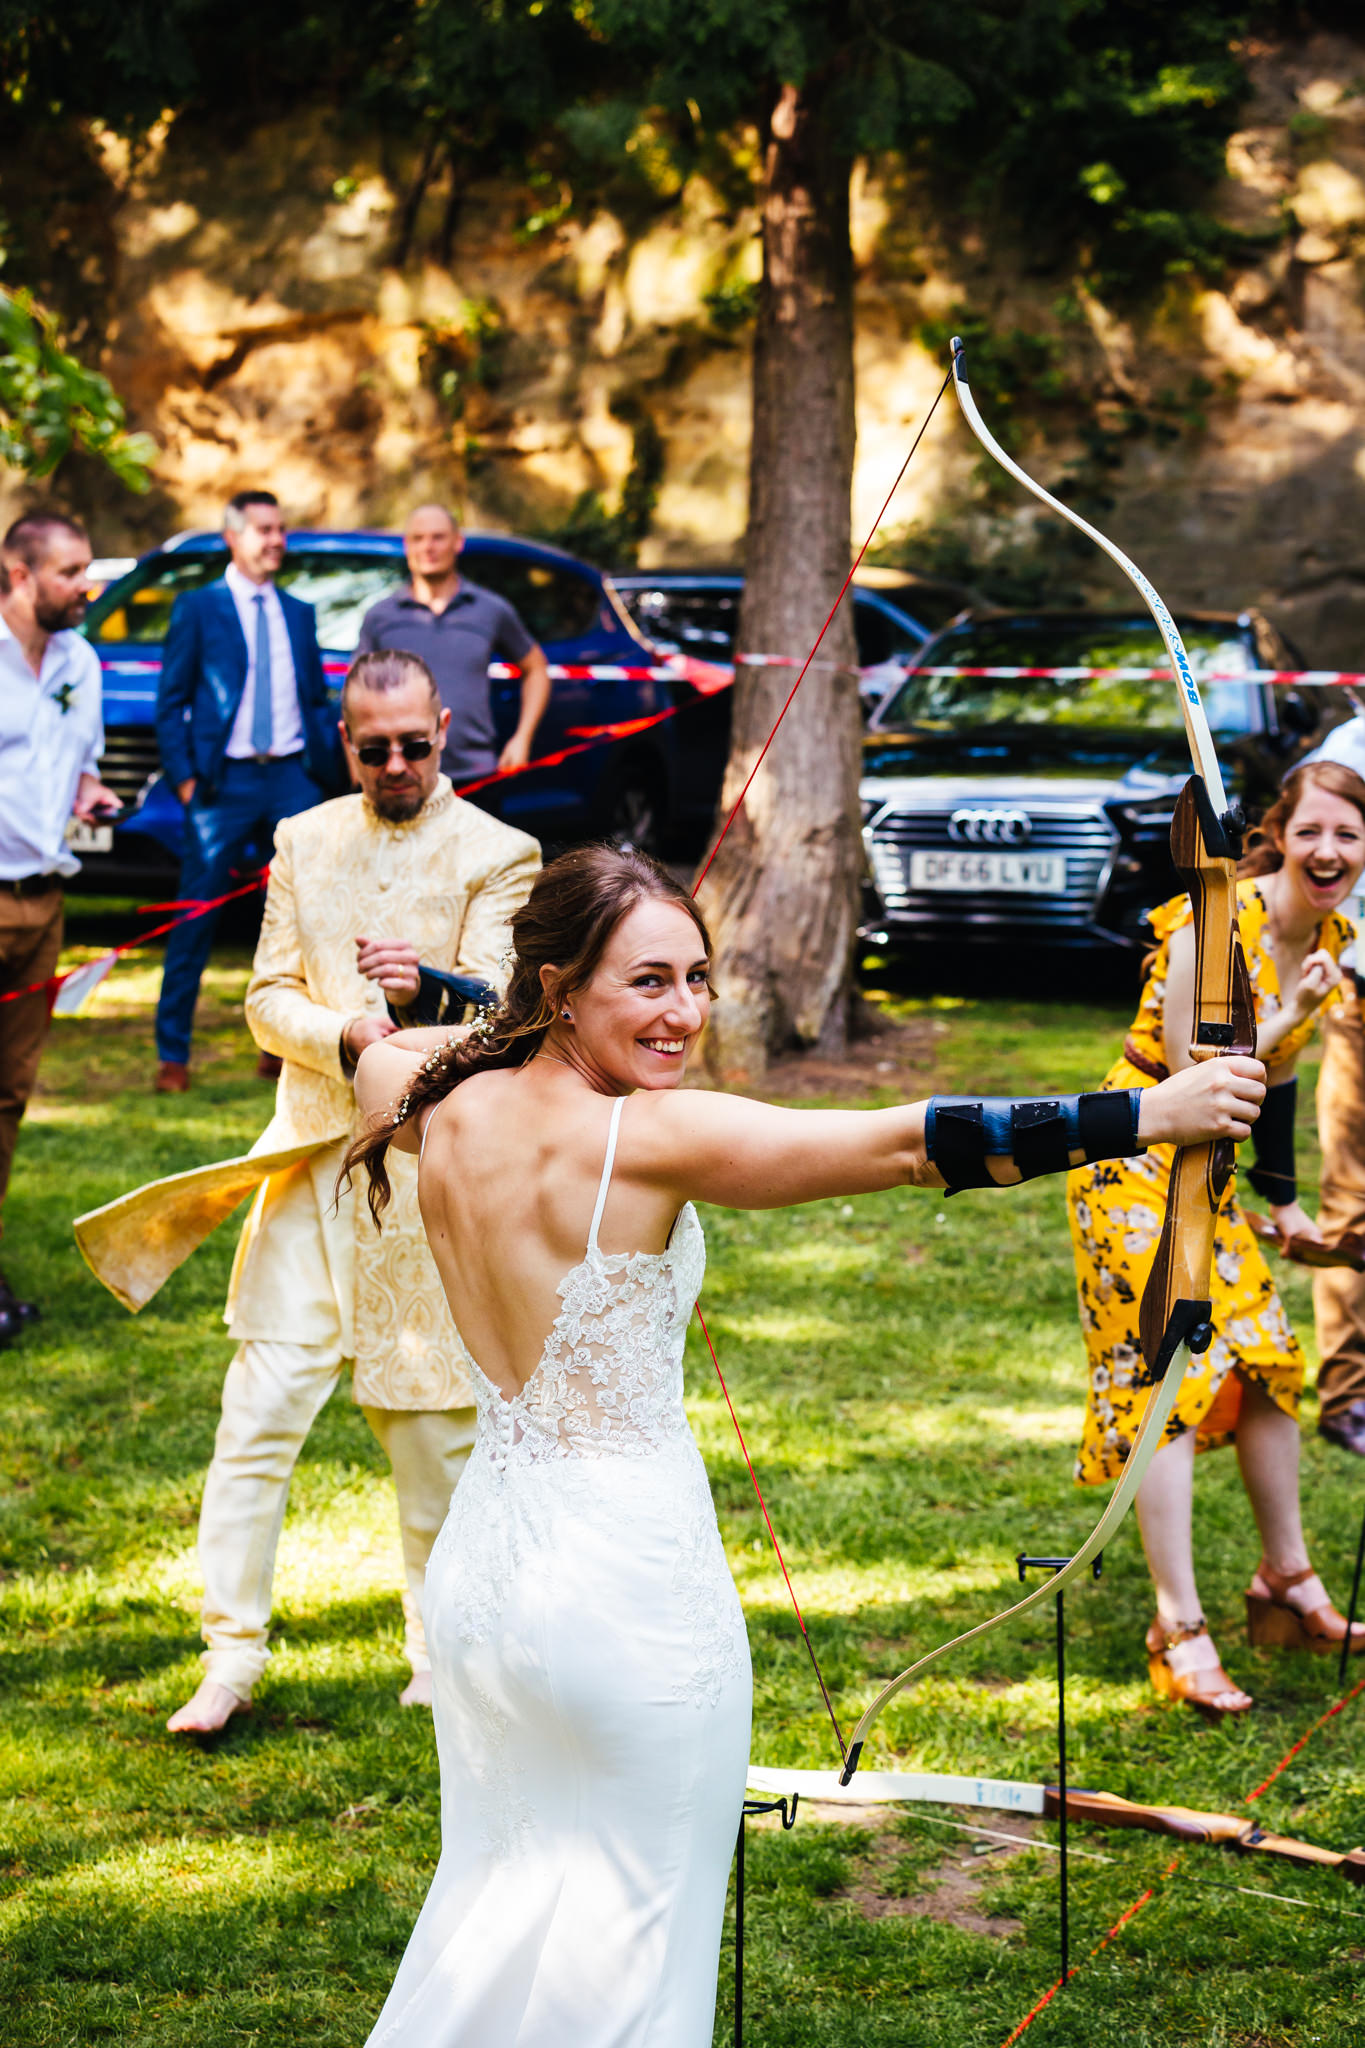 Wedding Entertainment - Bride doing archery at wedding in her dress